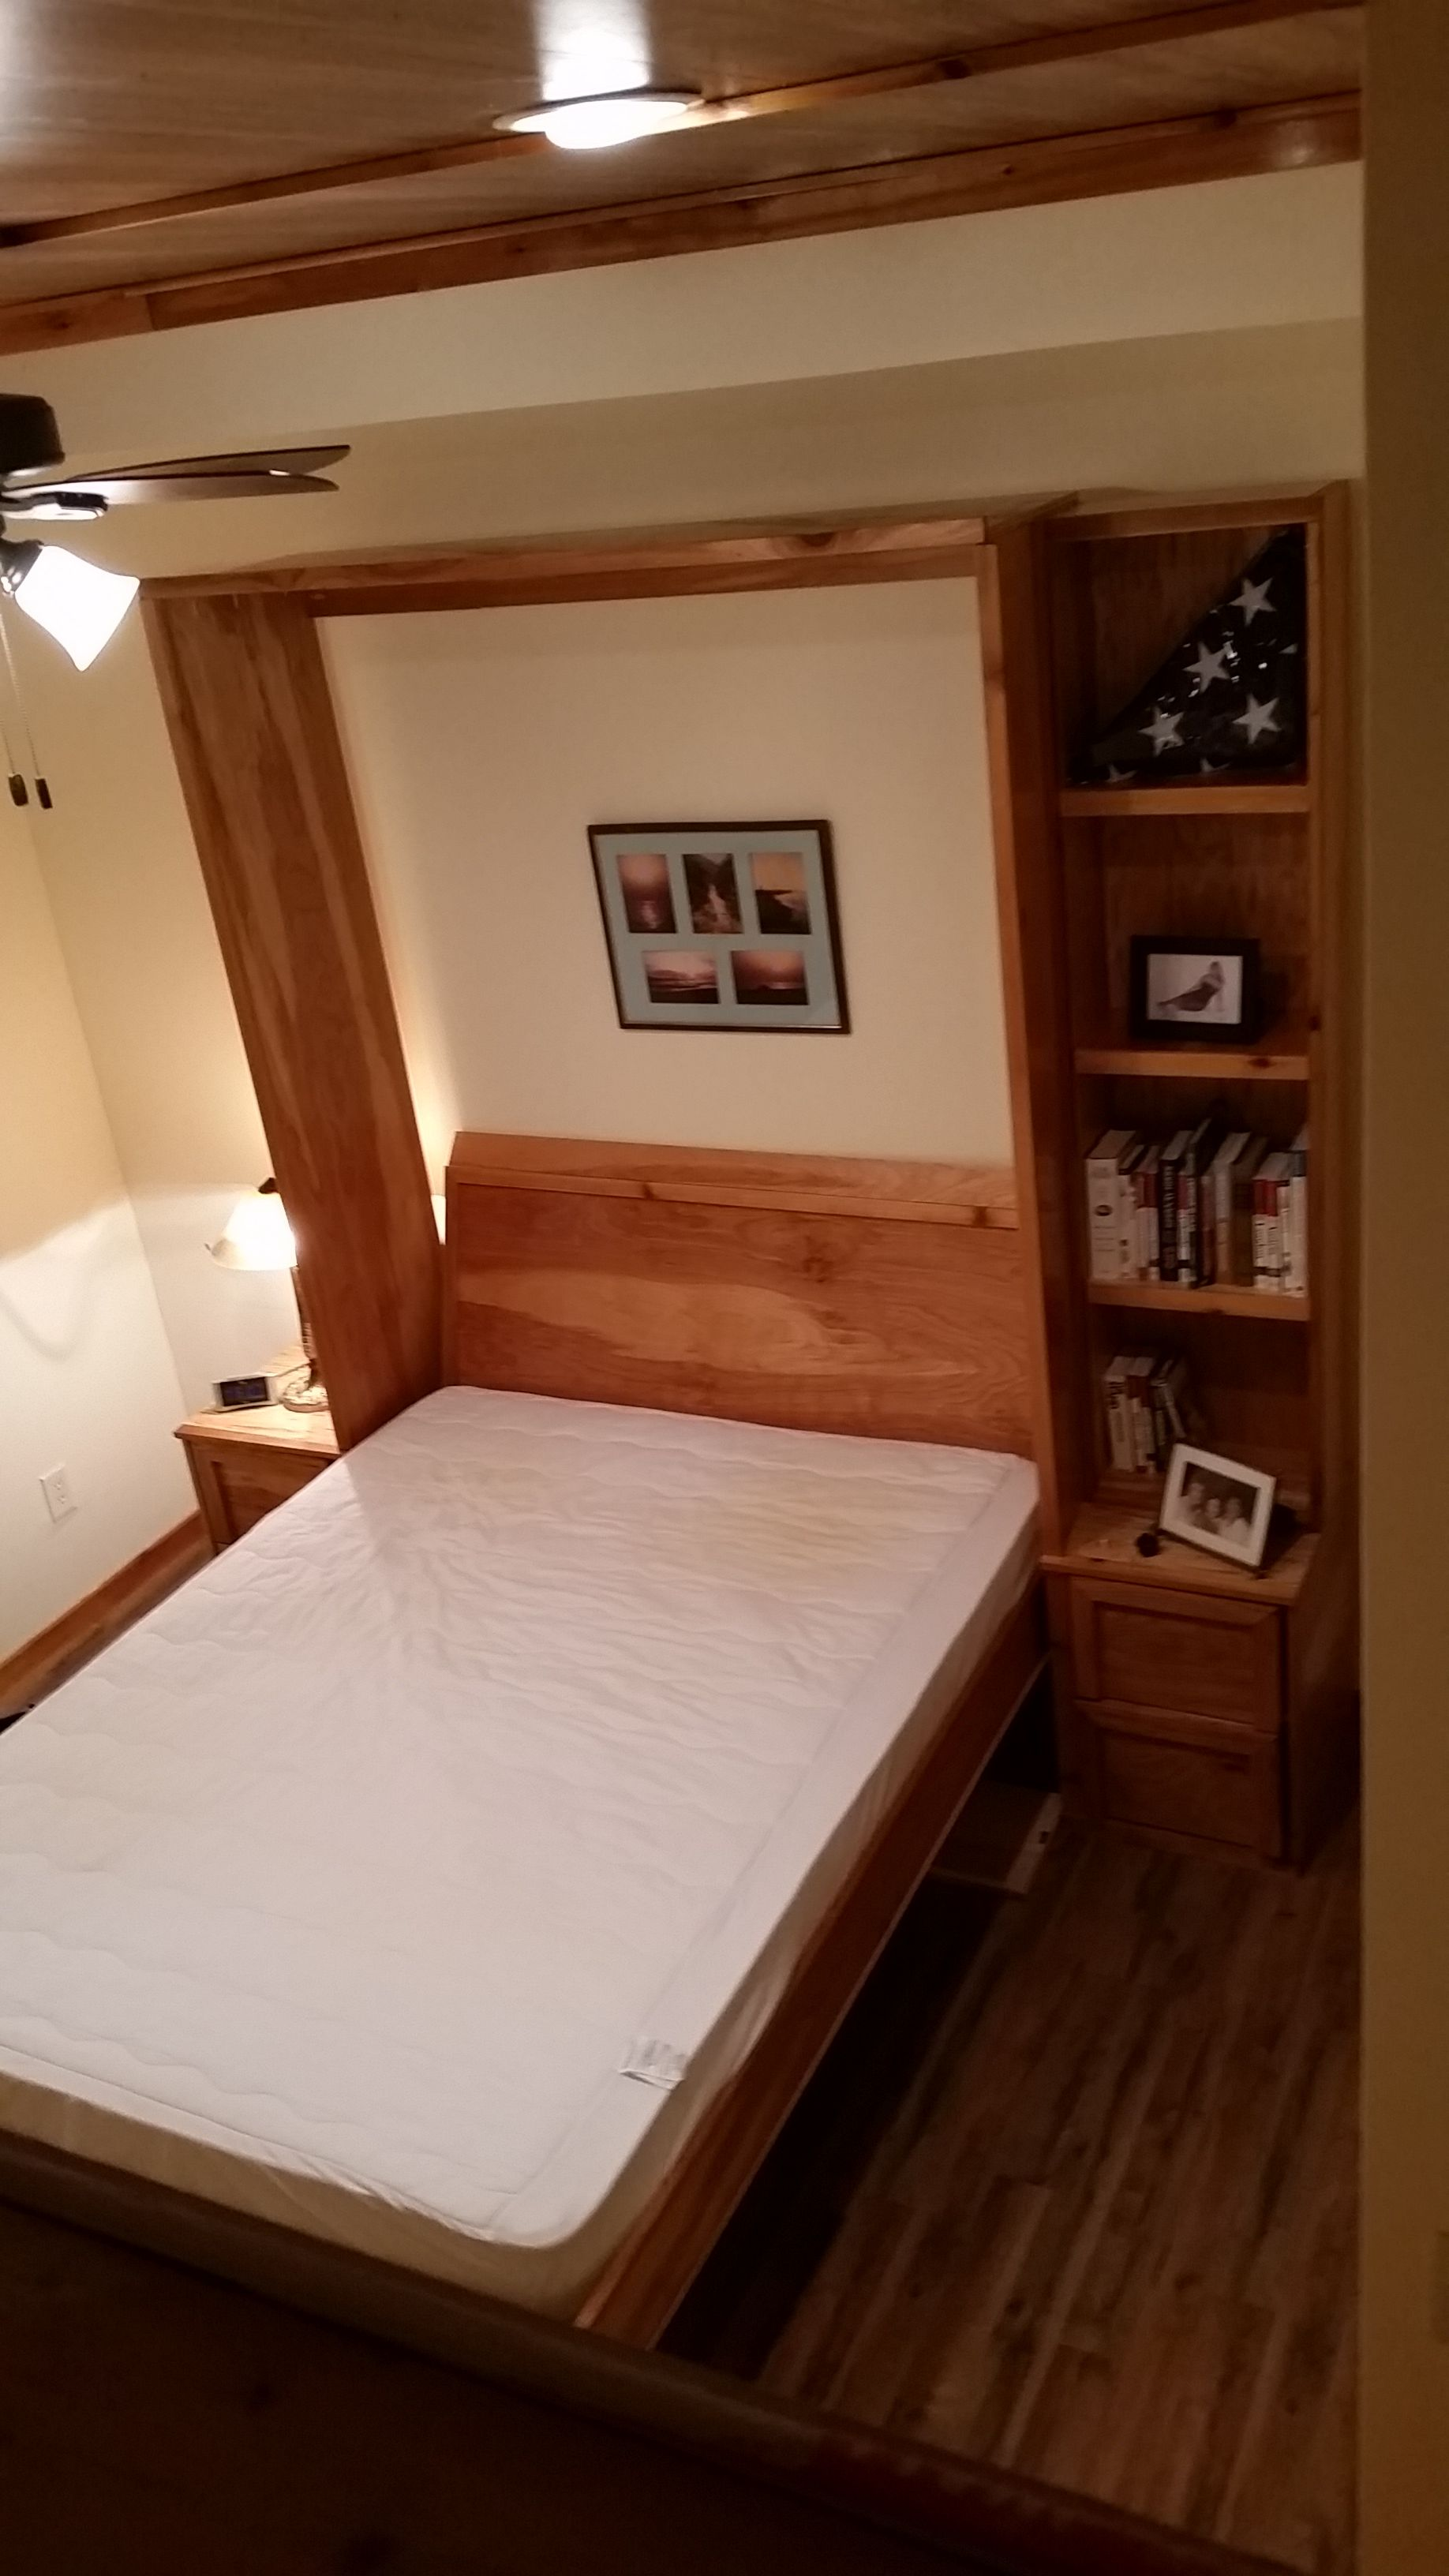 Diy Murphy Bed Without Expensive Hardware Bass Boat